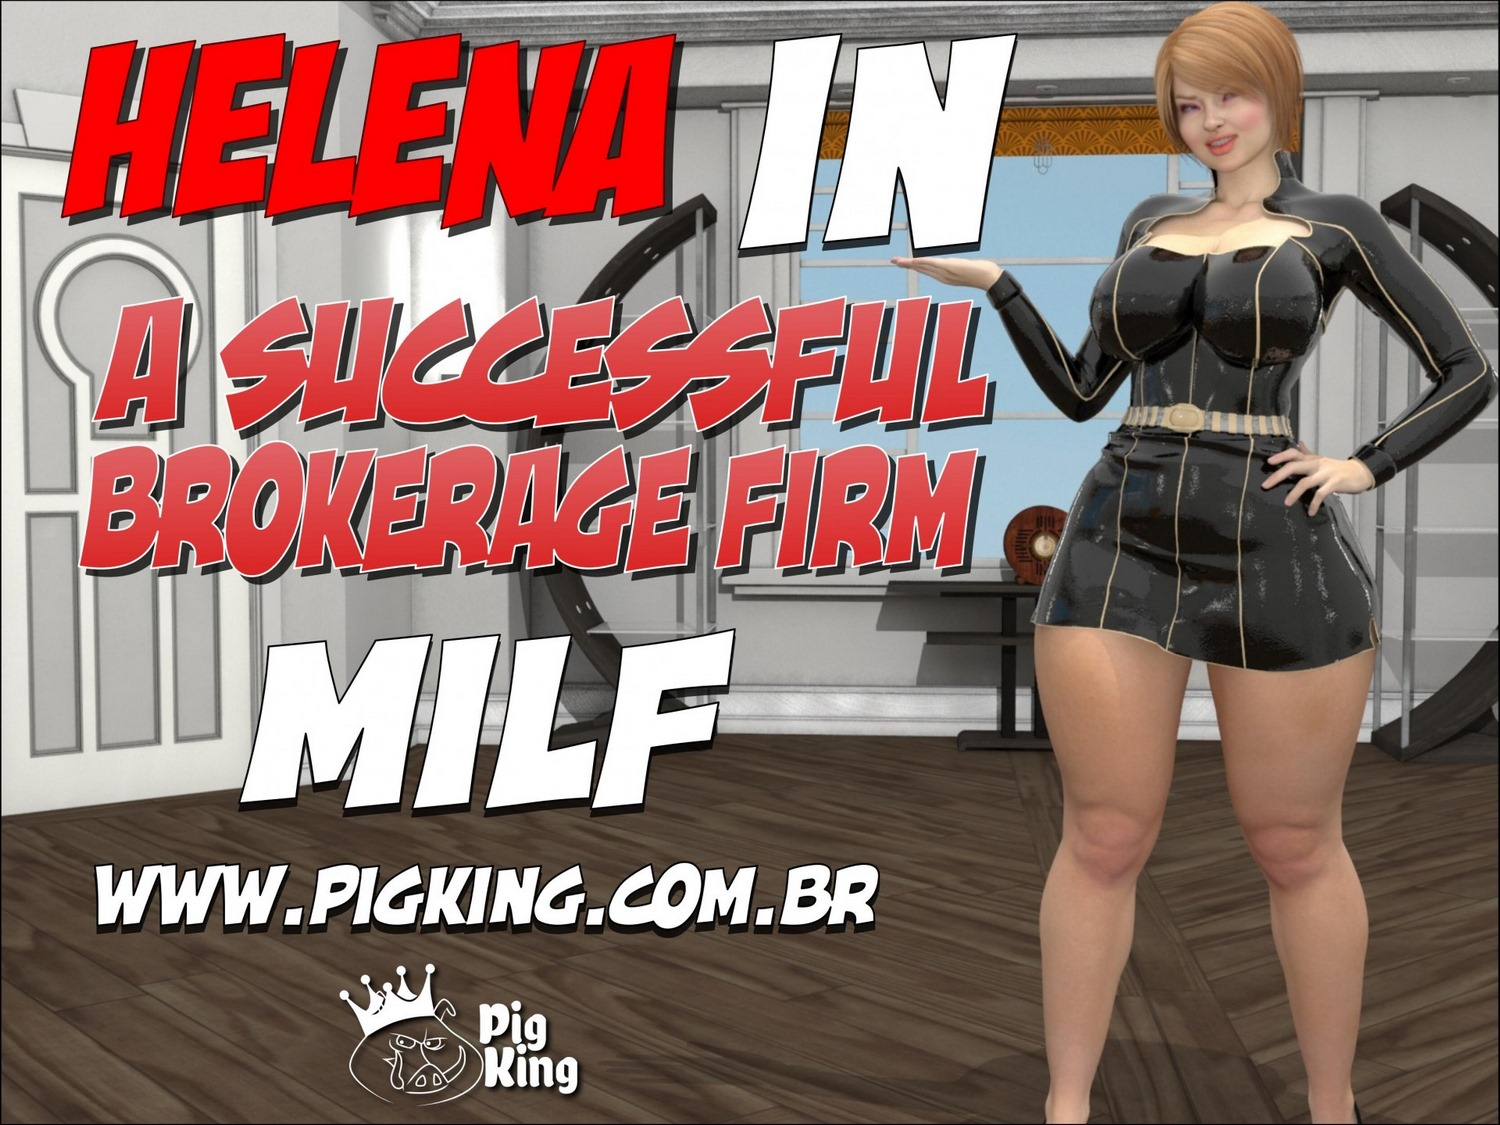 PigKing- Helena in A Successful Brokerage Firm